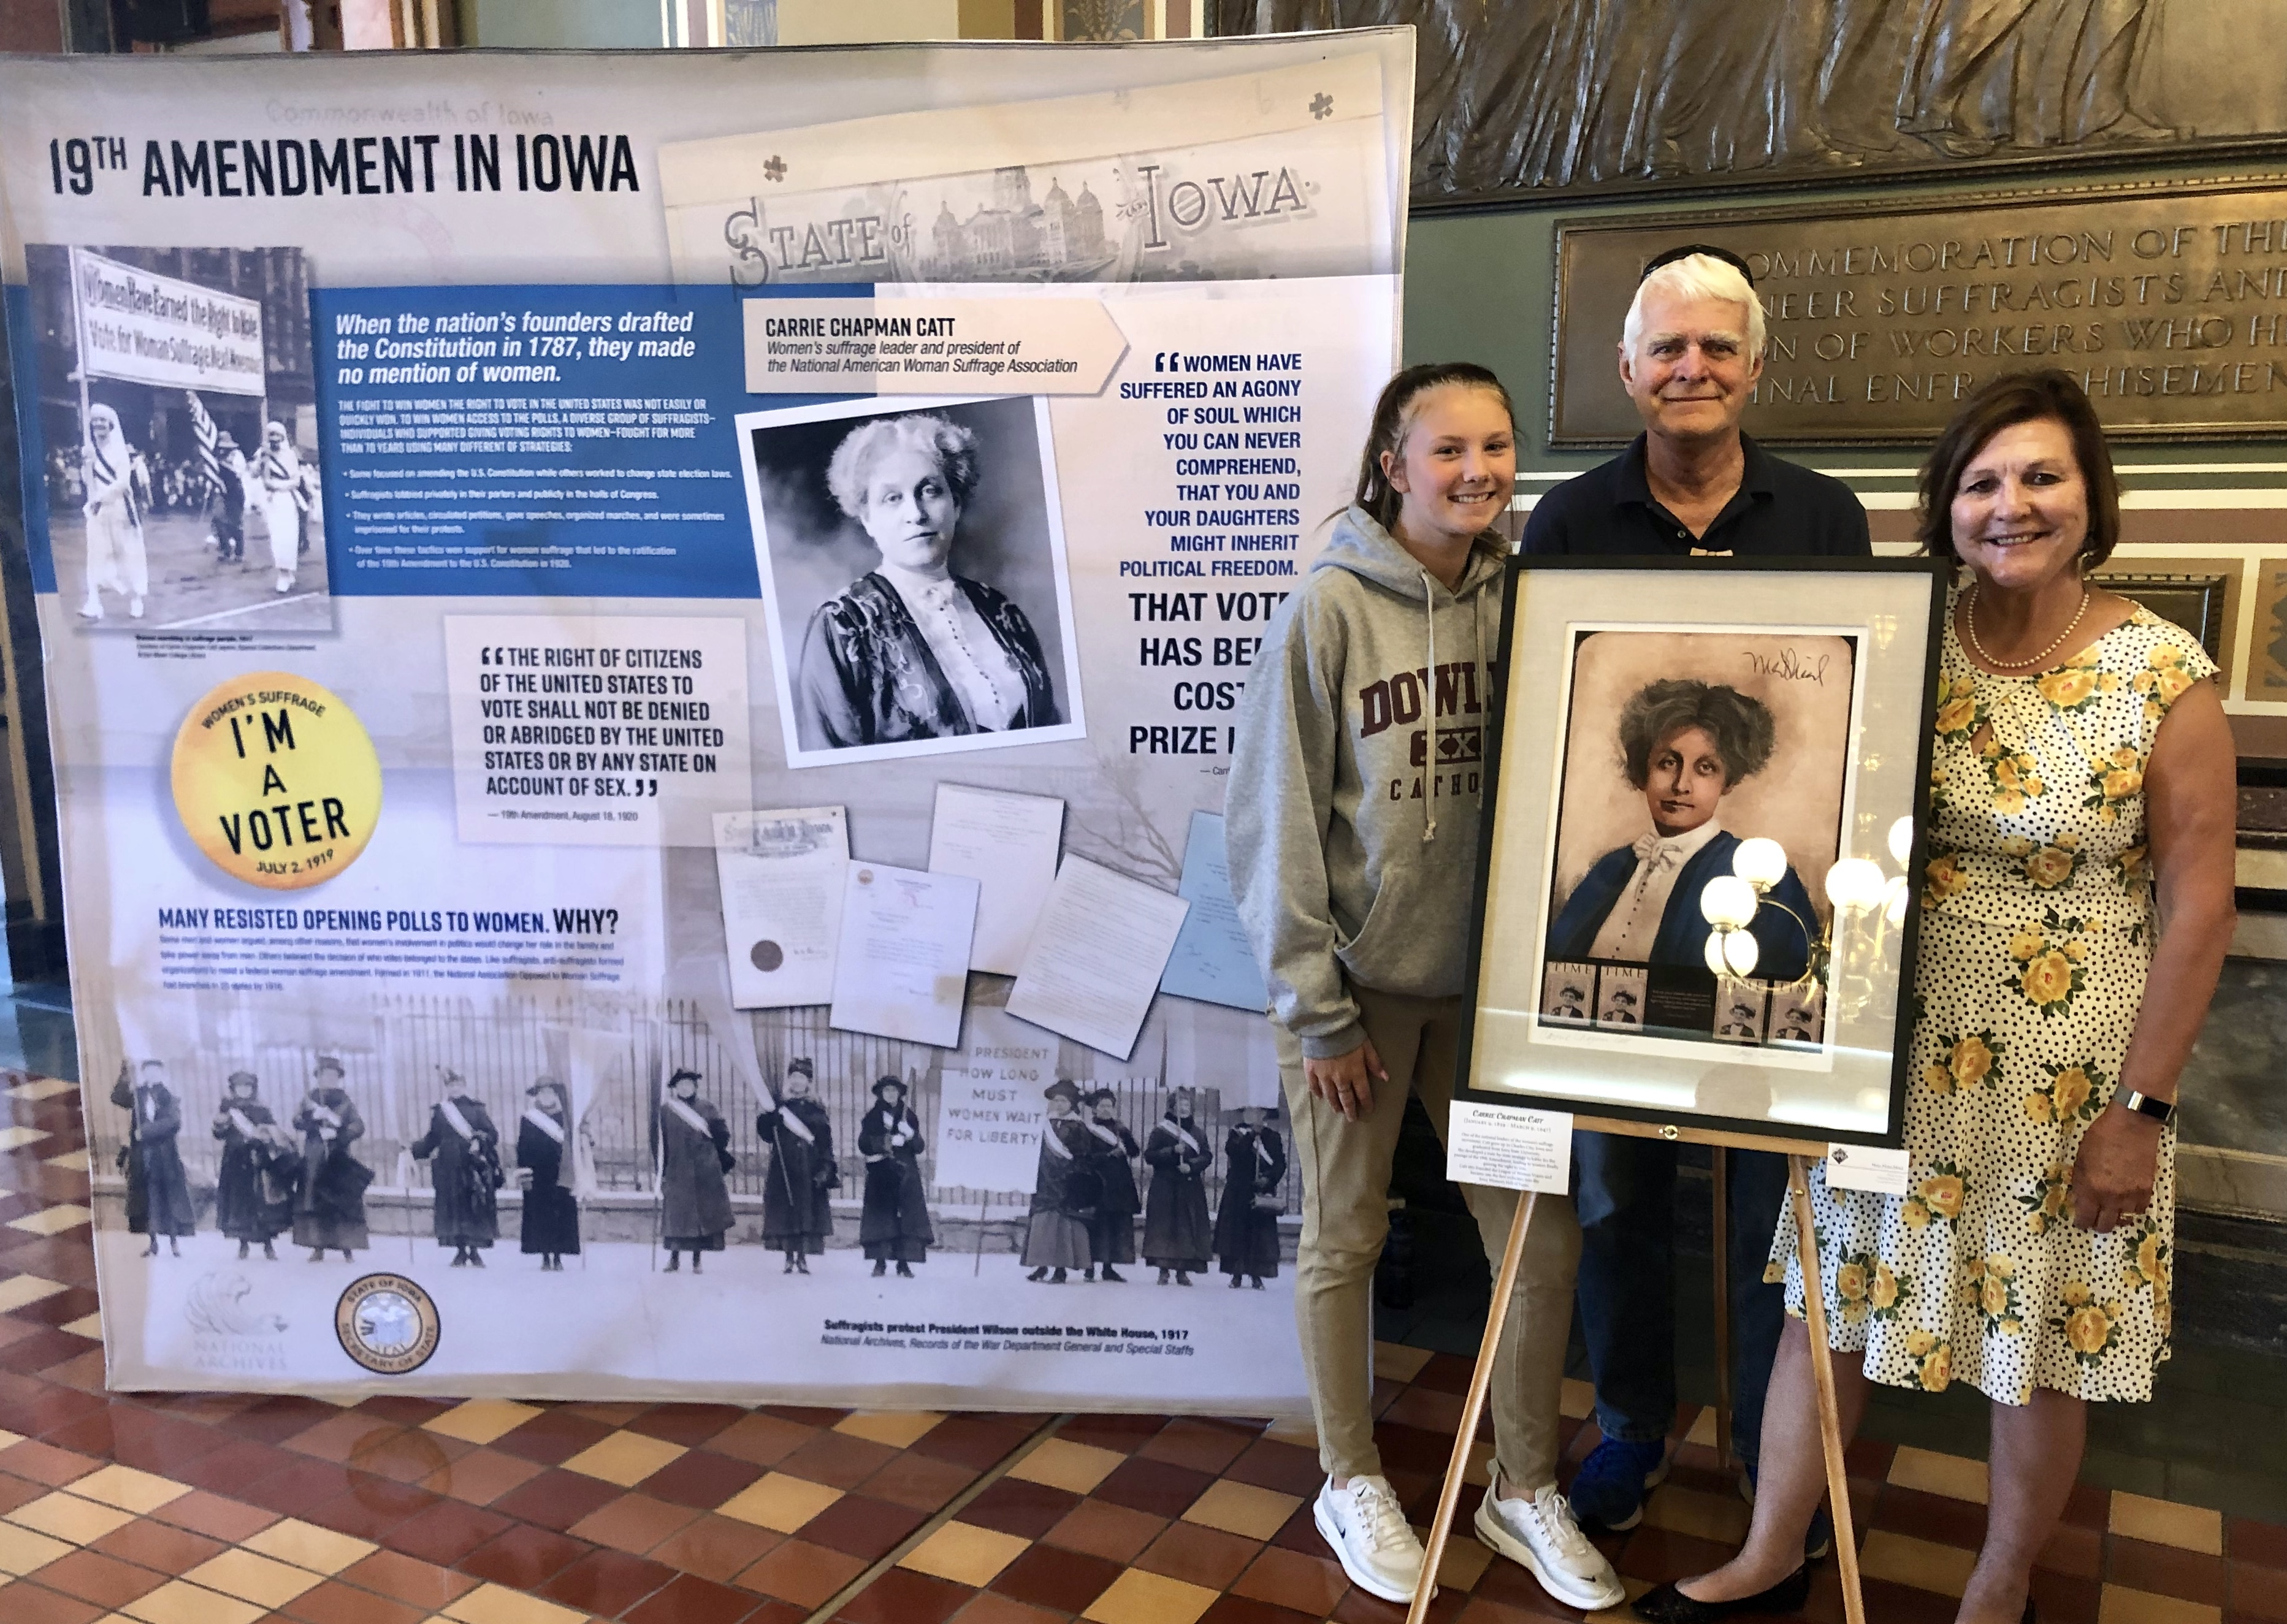 Carrie Lane Chapman Catt's great-great-great-great niece, Margaret Flanagan (left), and Catt's great-great nephew, Tim Lane (middle), pose with Bystrom (right) with Catt's portrait on Sept. 10. at the Iowa State Capitol Building. The portrait is part of the Women's Suffrage Centennial display, where Catt is one of 19 suffragists recognized.